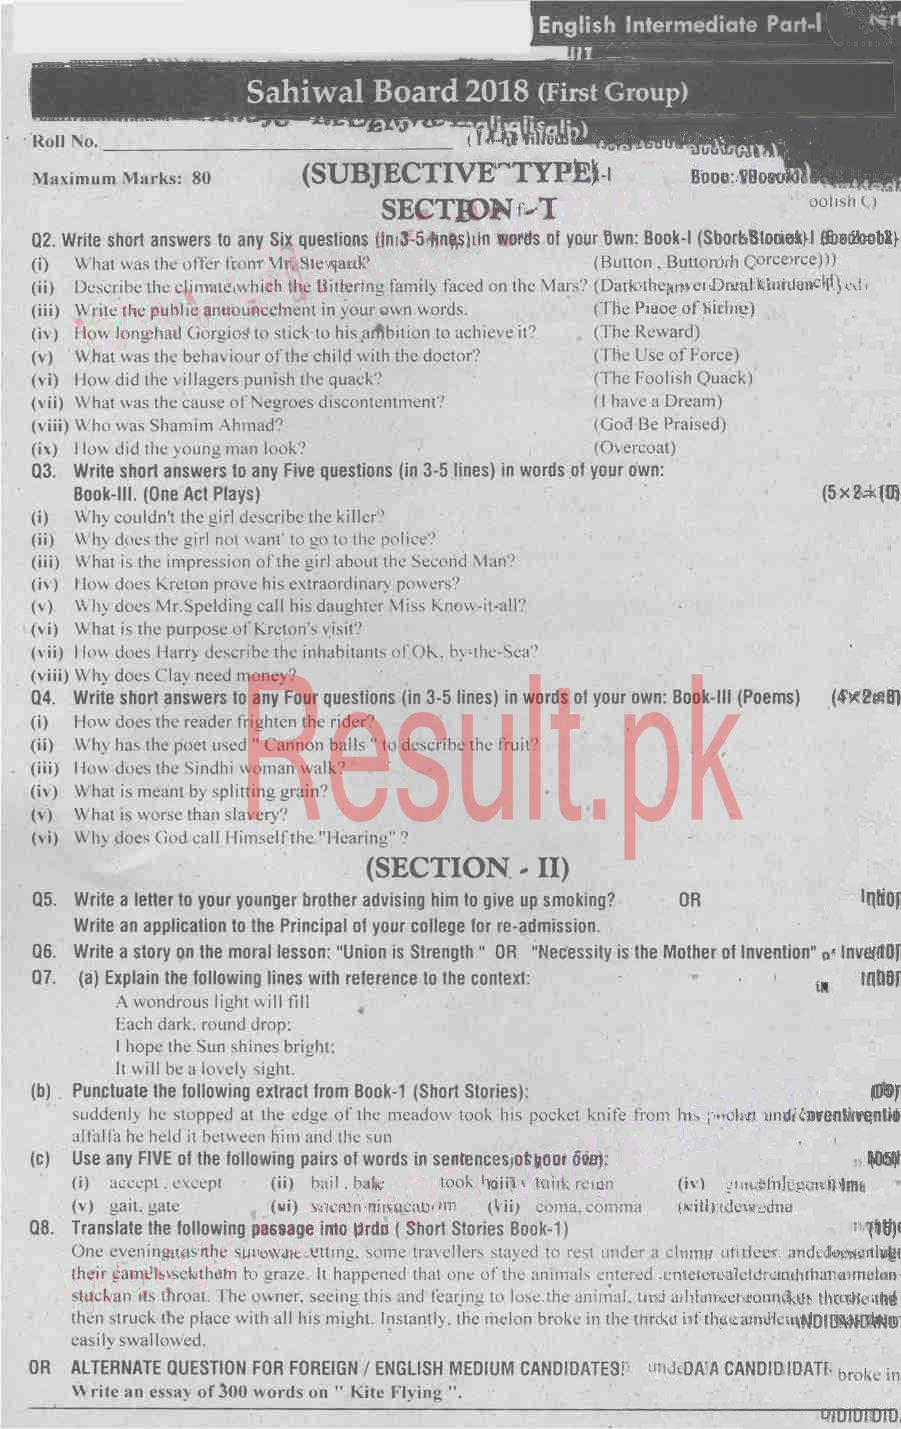 BISE Sahiwal Board Past Papers 2019 Inter Part 1 2, FA